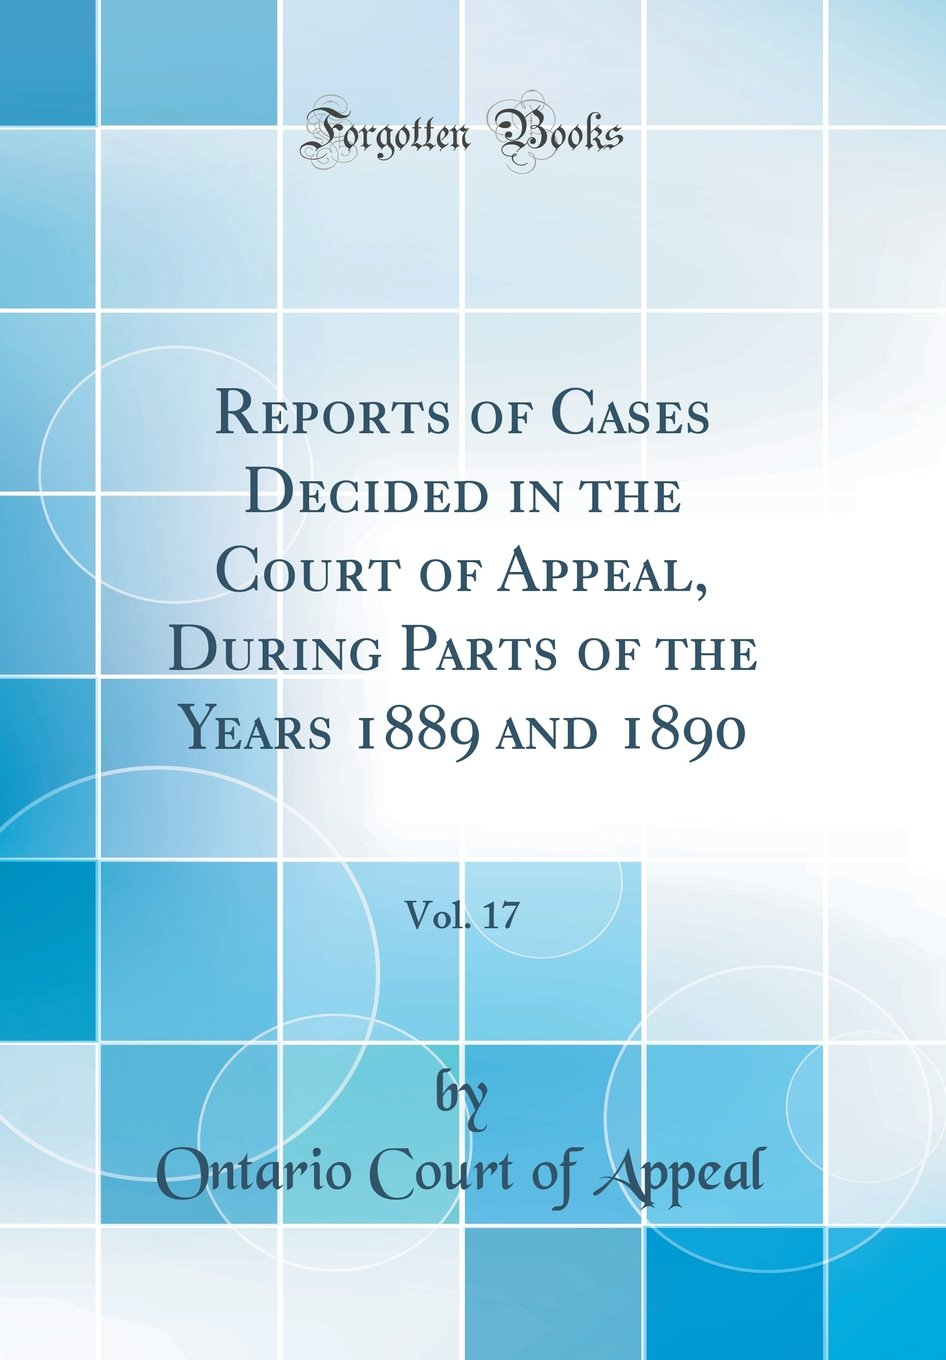 Reports of Cases Decided in the Court of Appeal, During Parts of the Years 1889 and 1890, Vol. 17 (Classic Reprint) PDF Text fb2 book